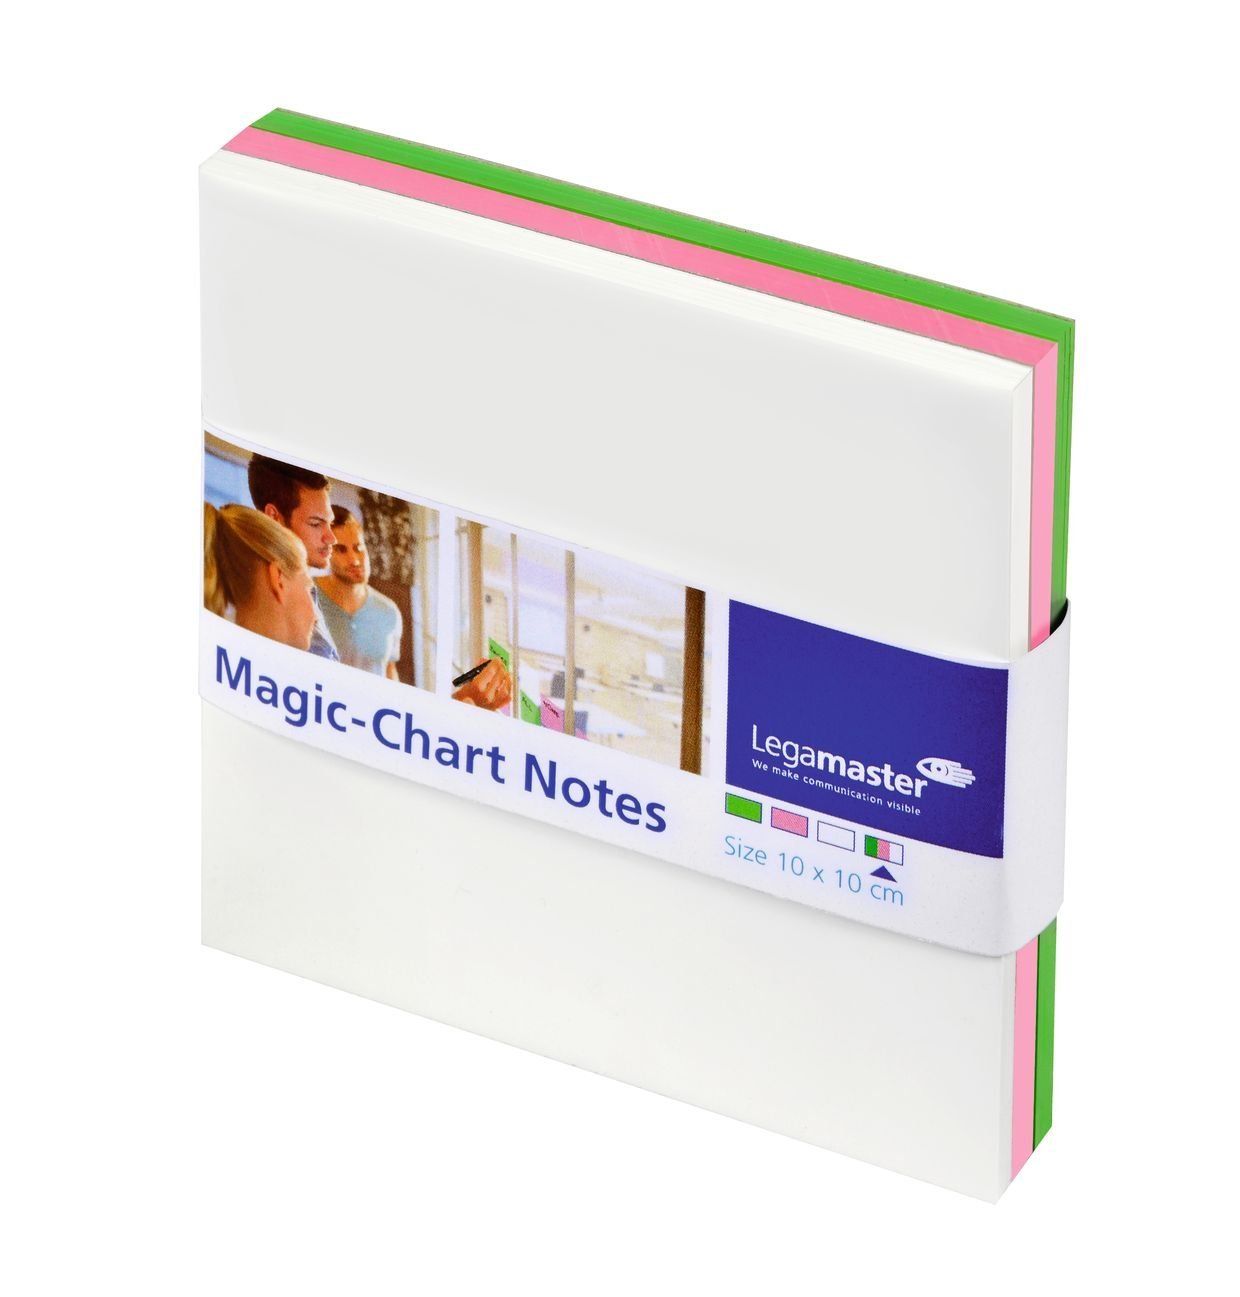 Magic-Chart Notes ATD 10x10 PK250